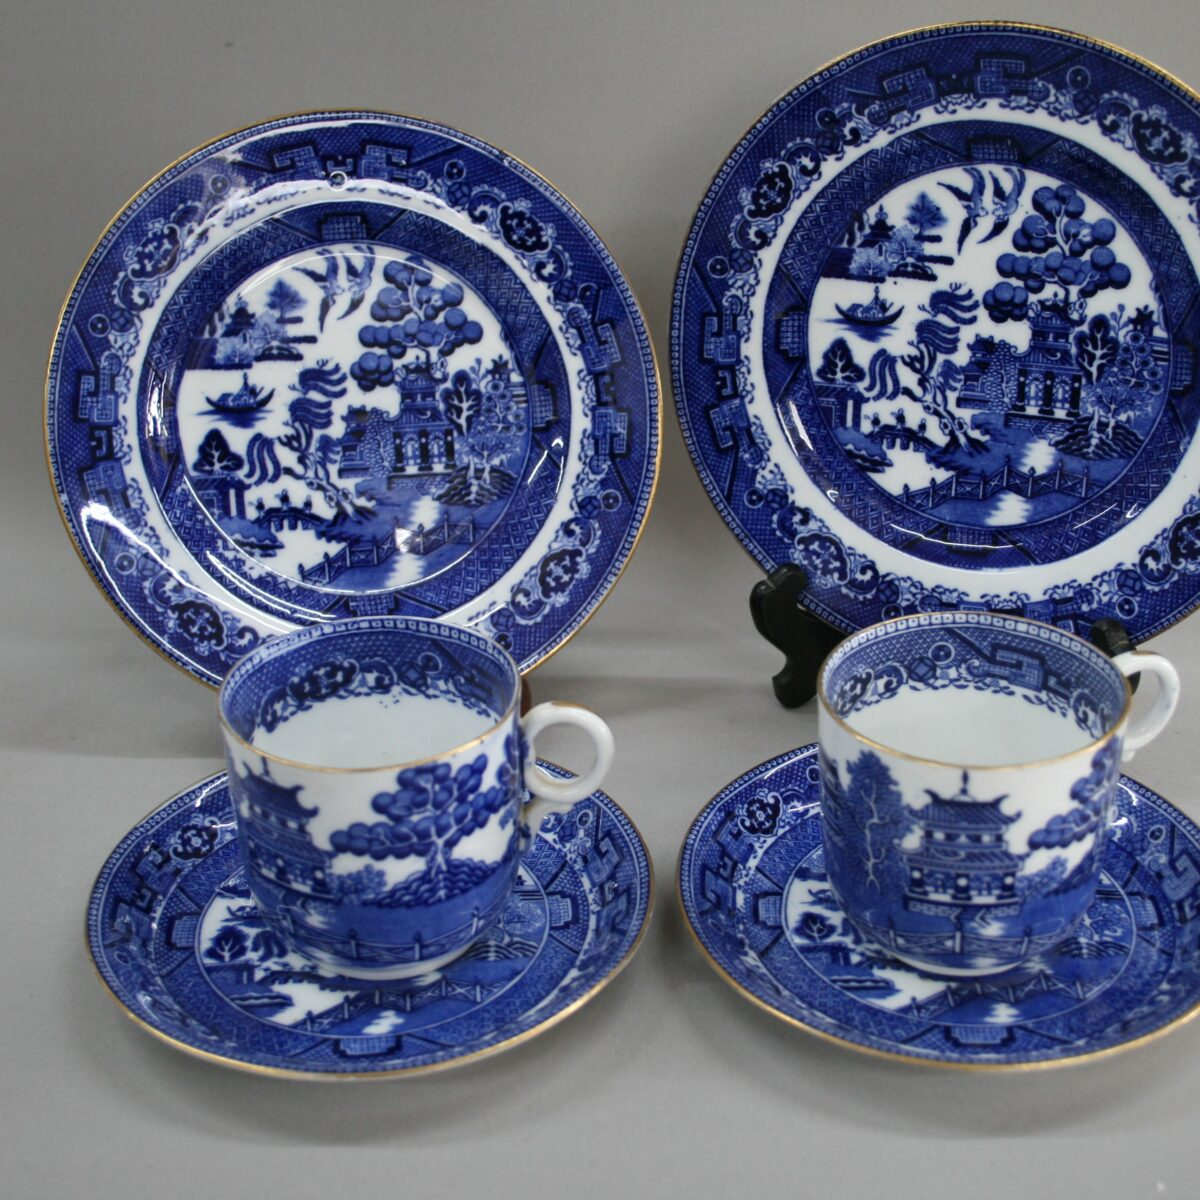 blue and white willow pattern porcelain tea set